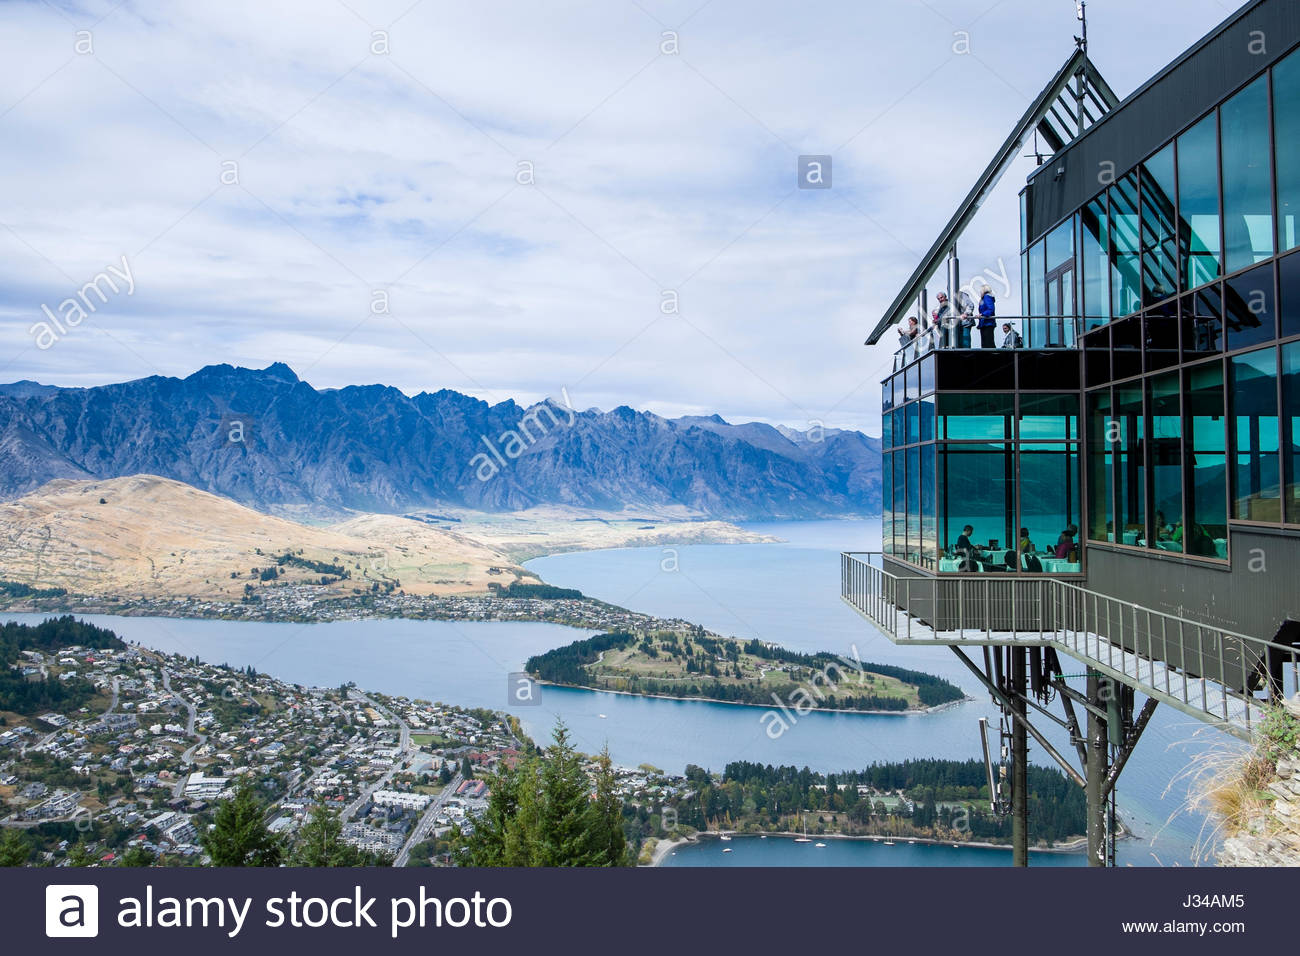 Skyline restaurant queenstown stock photos skyline for 5 the terrace queenstown